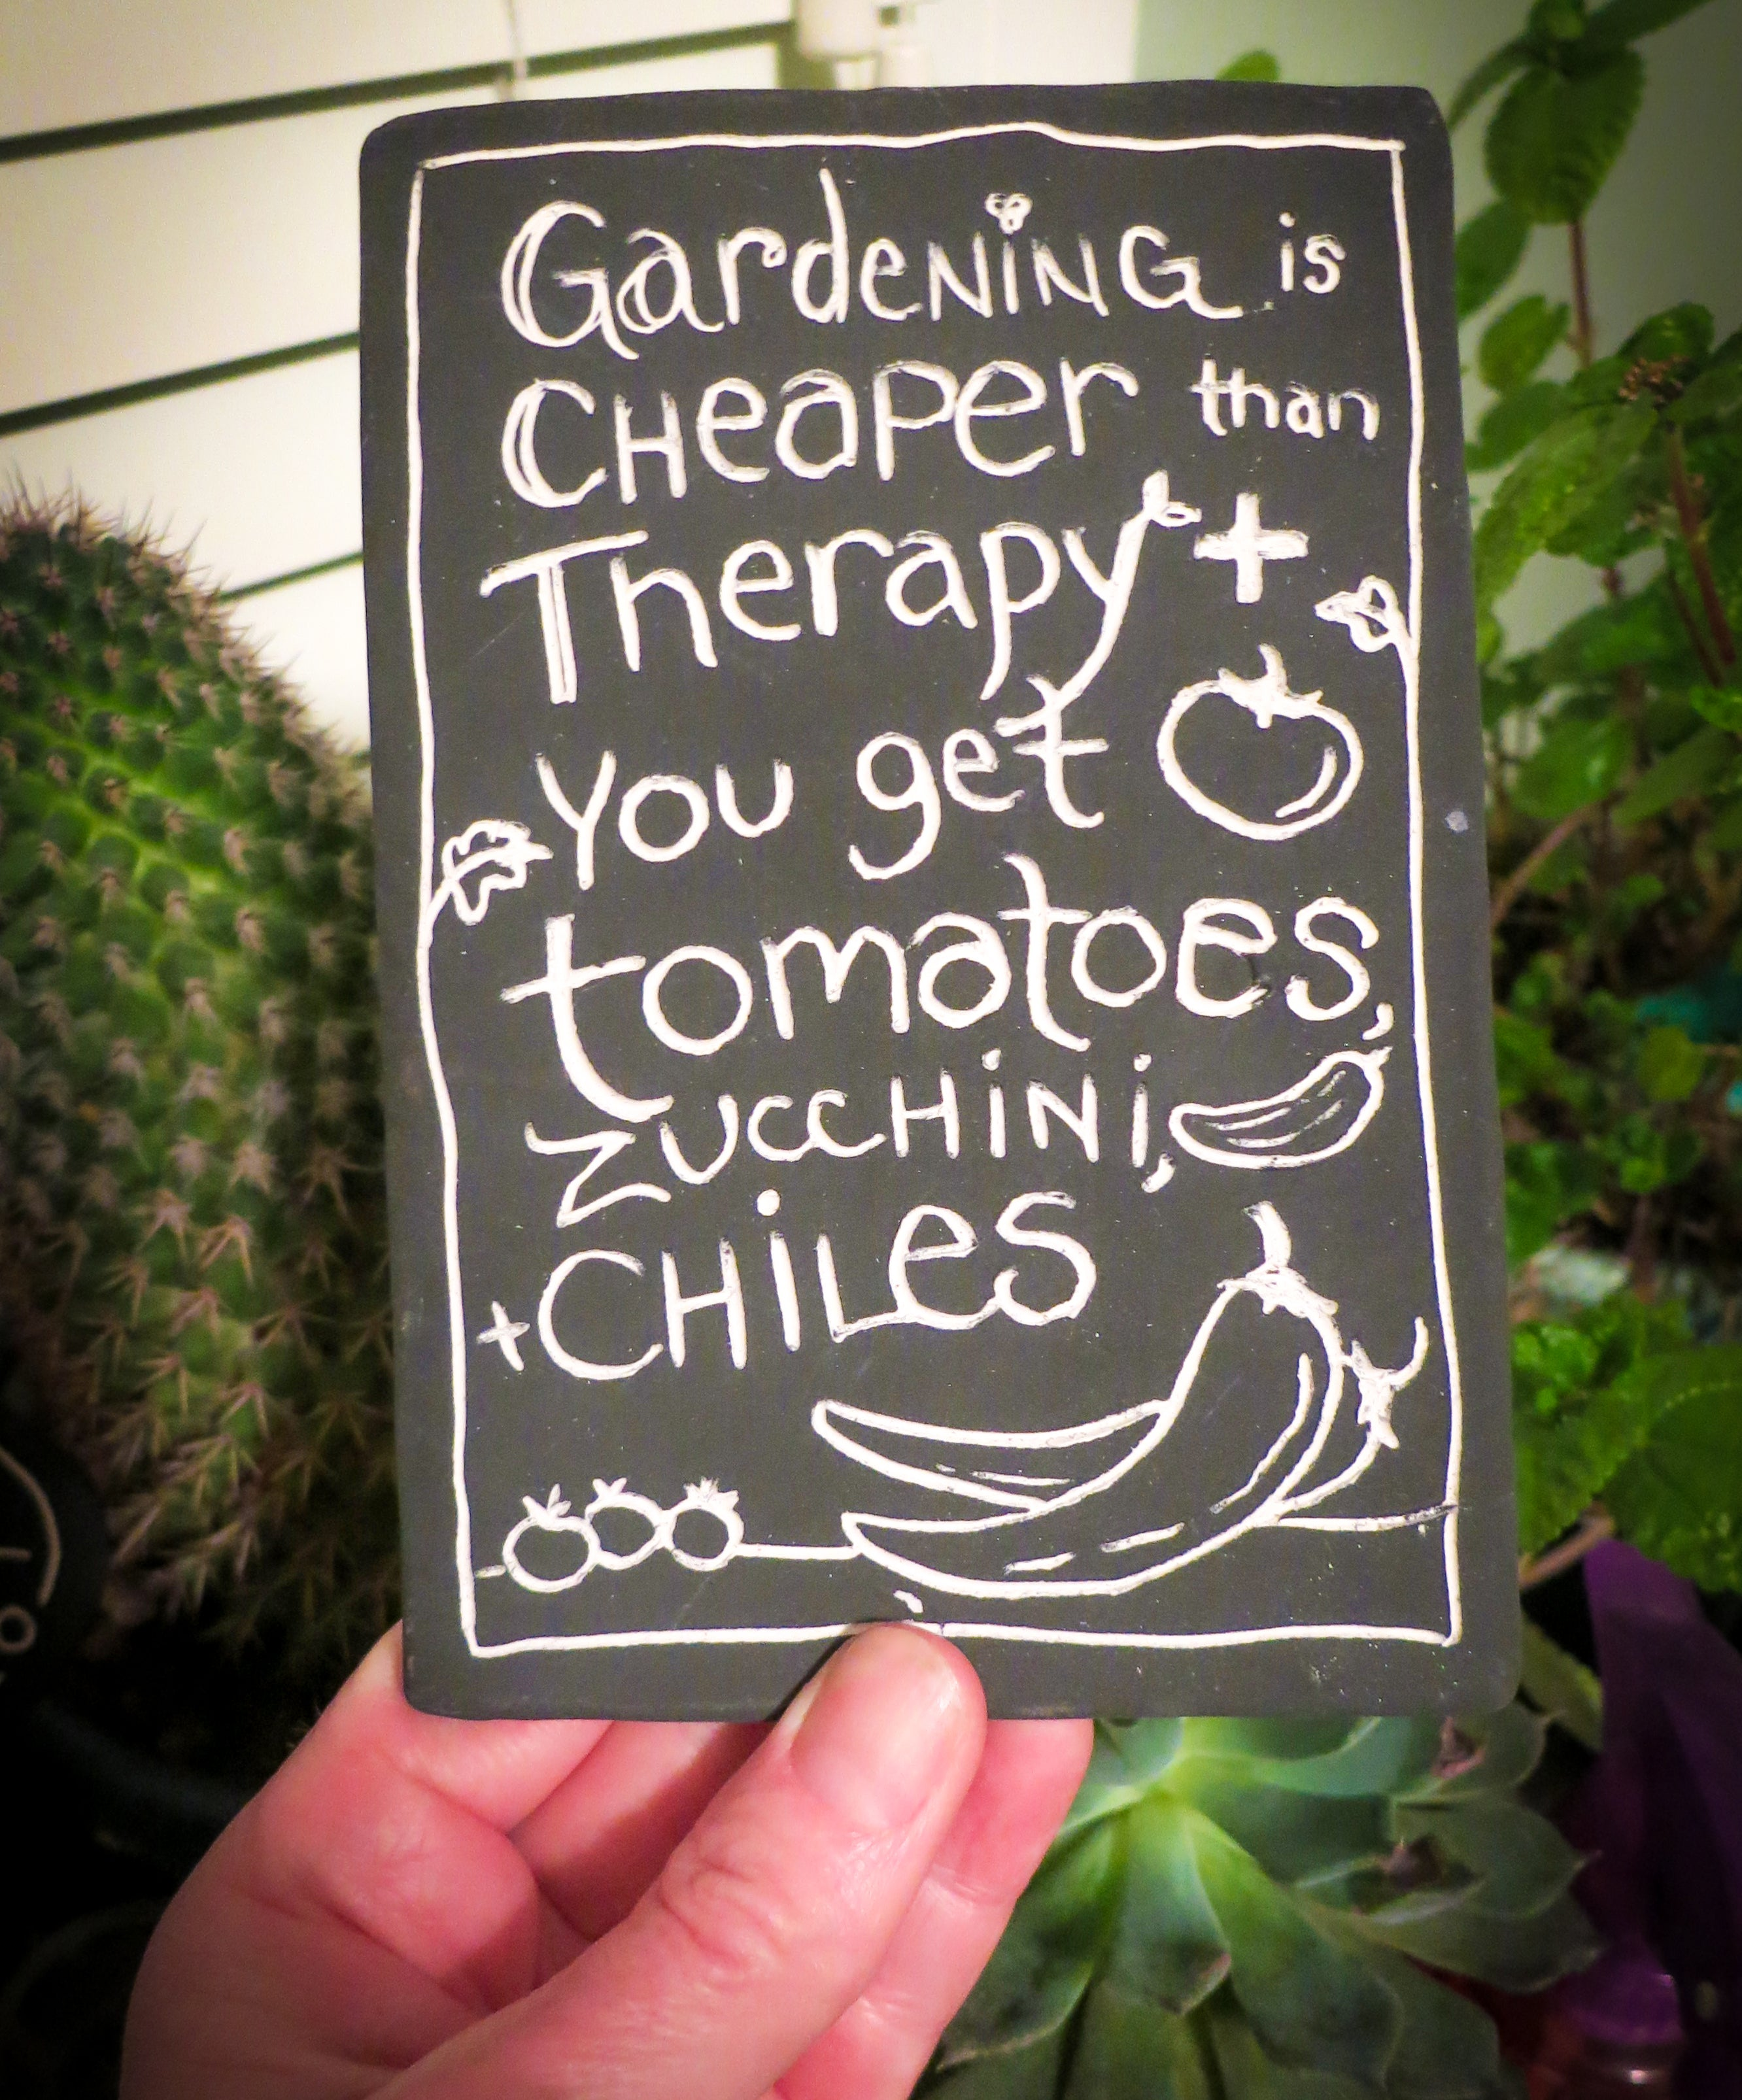 Gardening is cheaper than therapy, plus you get tomatoes, zucchini, chiles and more....